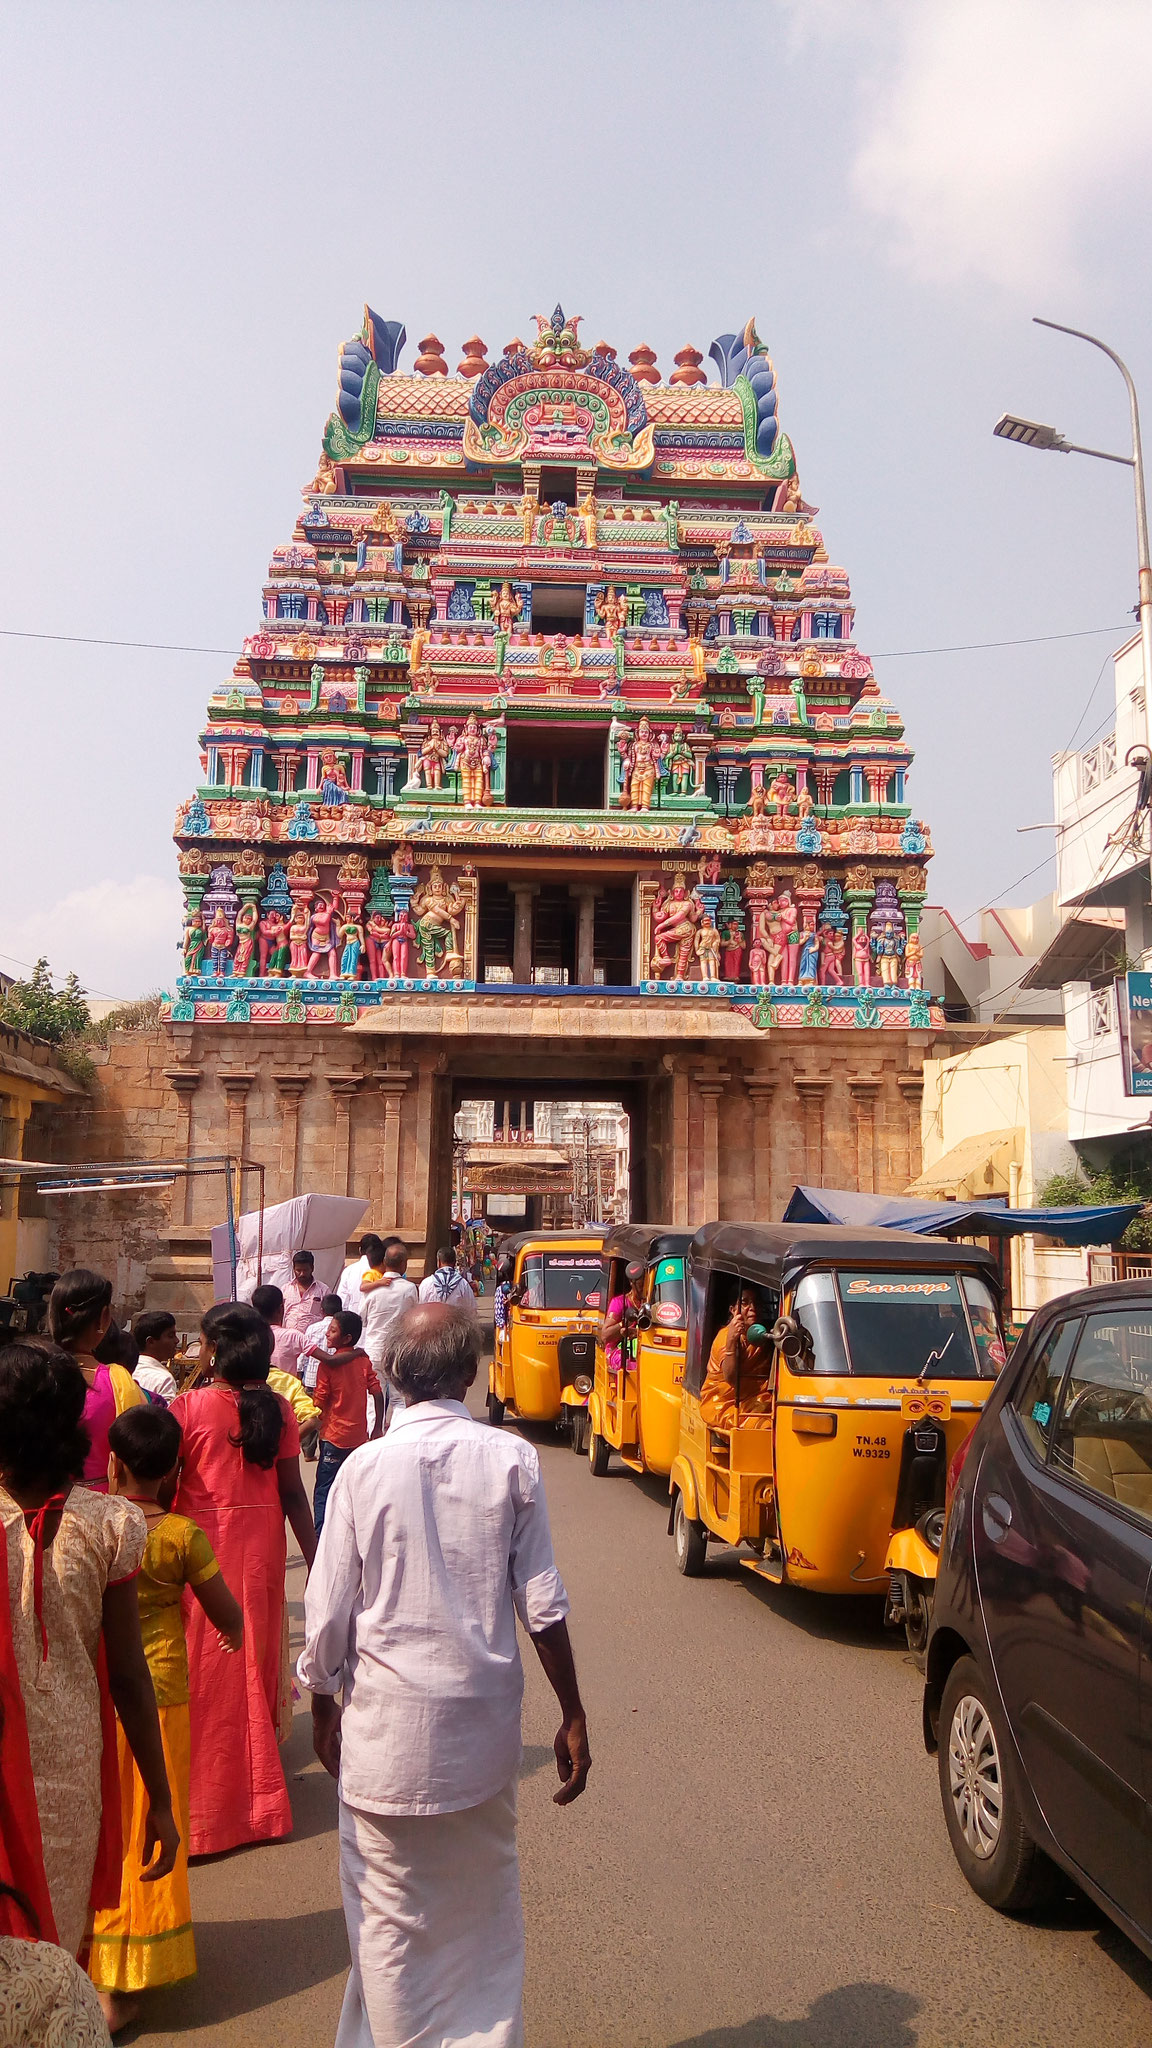 Stop-over on our way home: Trichy Temple (Tiruchirappalli)